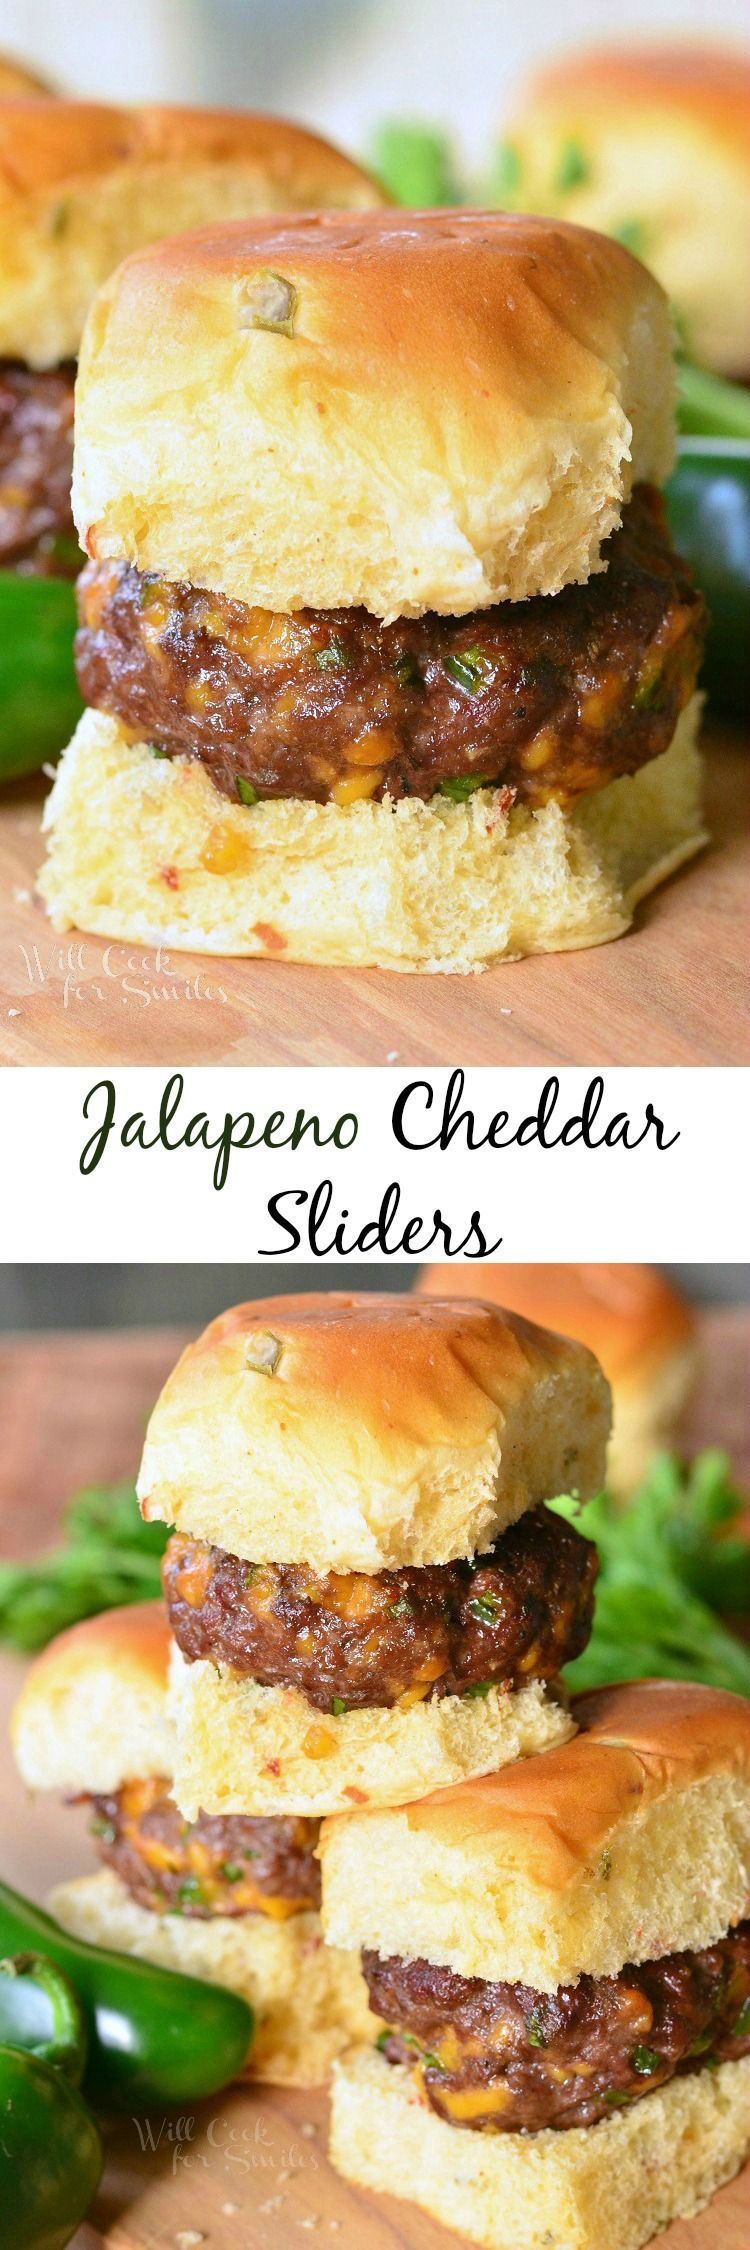 Jalapeno Cheddar Sliders. DELICIOUS little cheeseburgers ...